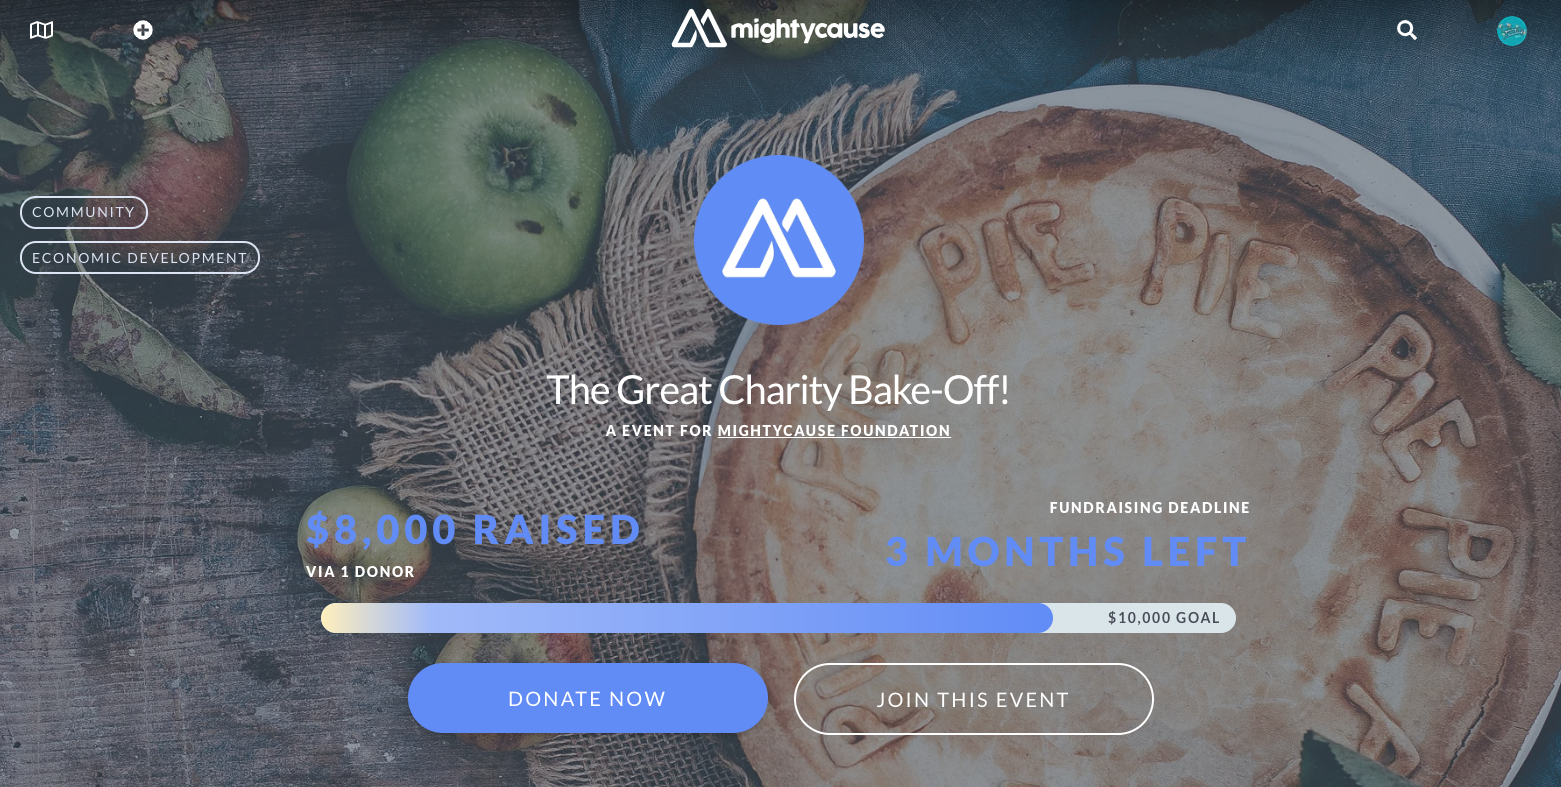 screenshot of charity bake-off event fundraiser on mightycause